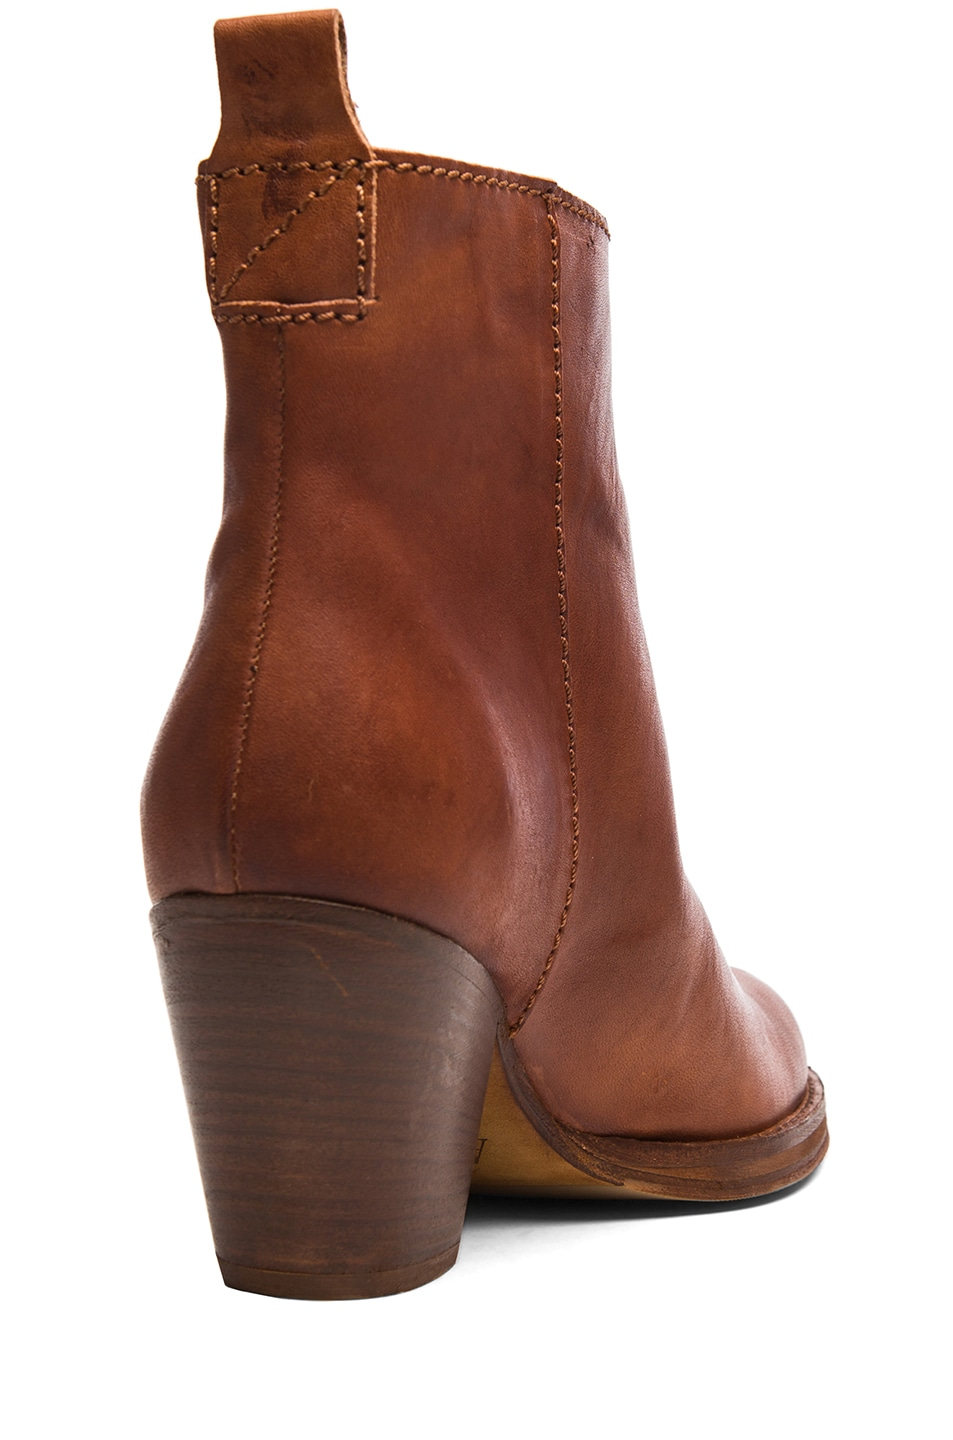 Image 3 of Acne Studios Pistol Leather Booties in Chestnut